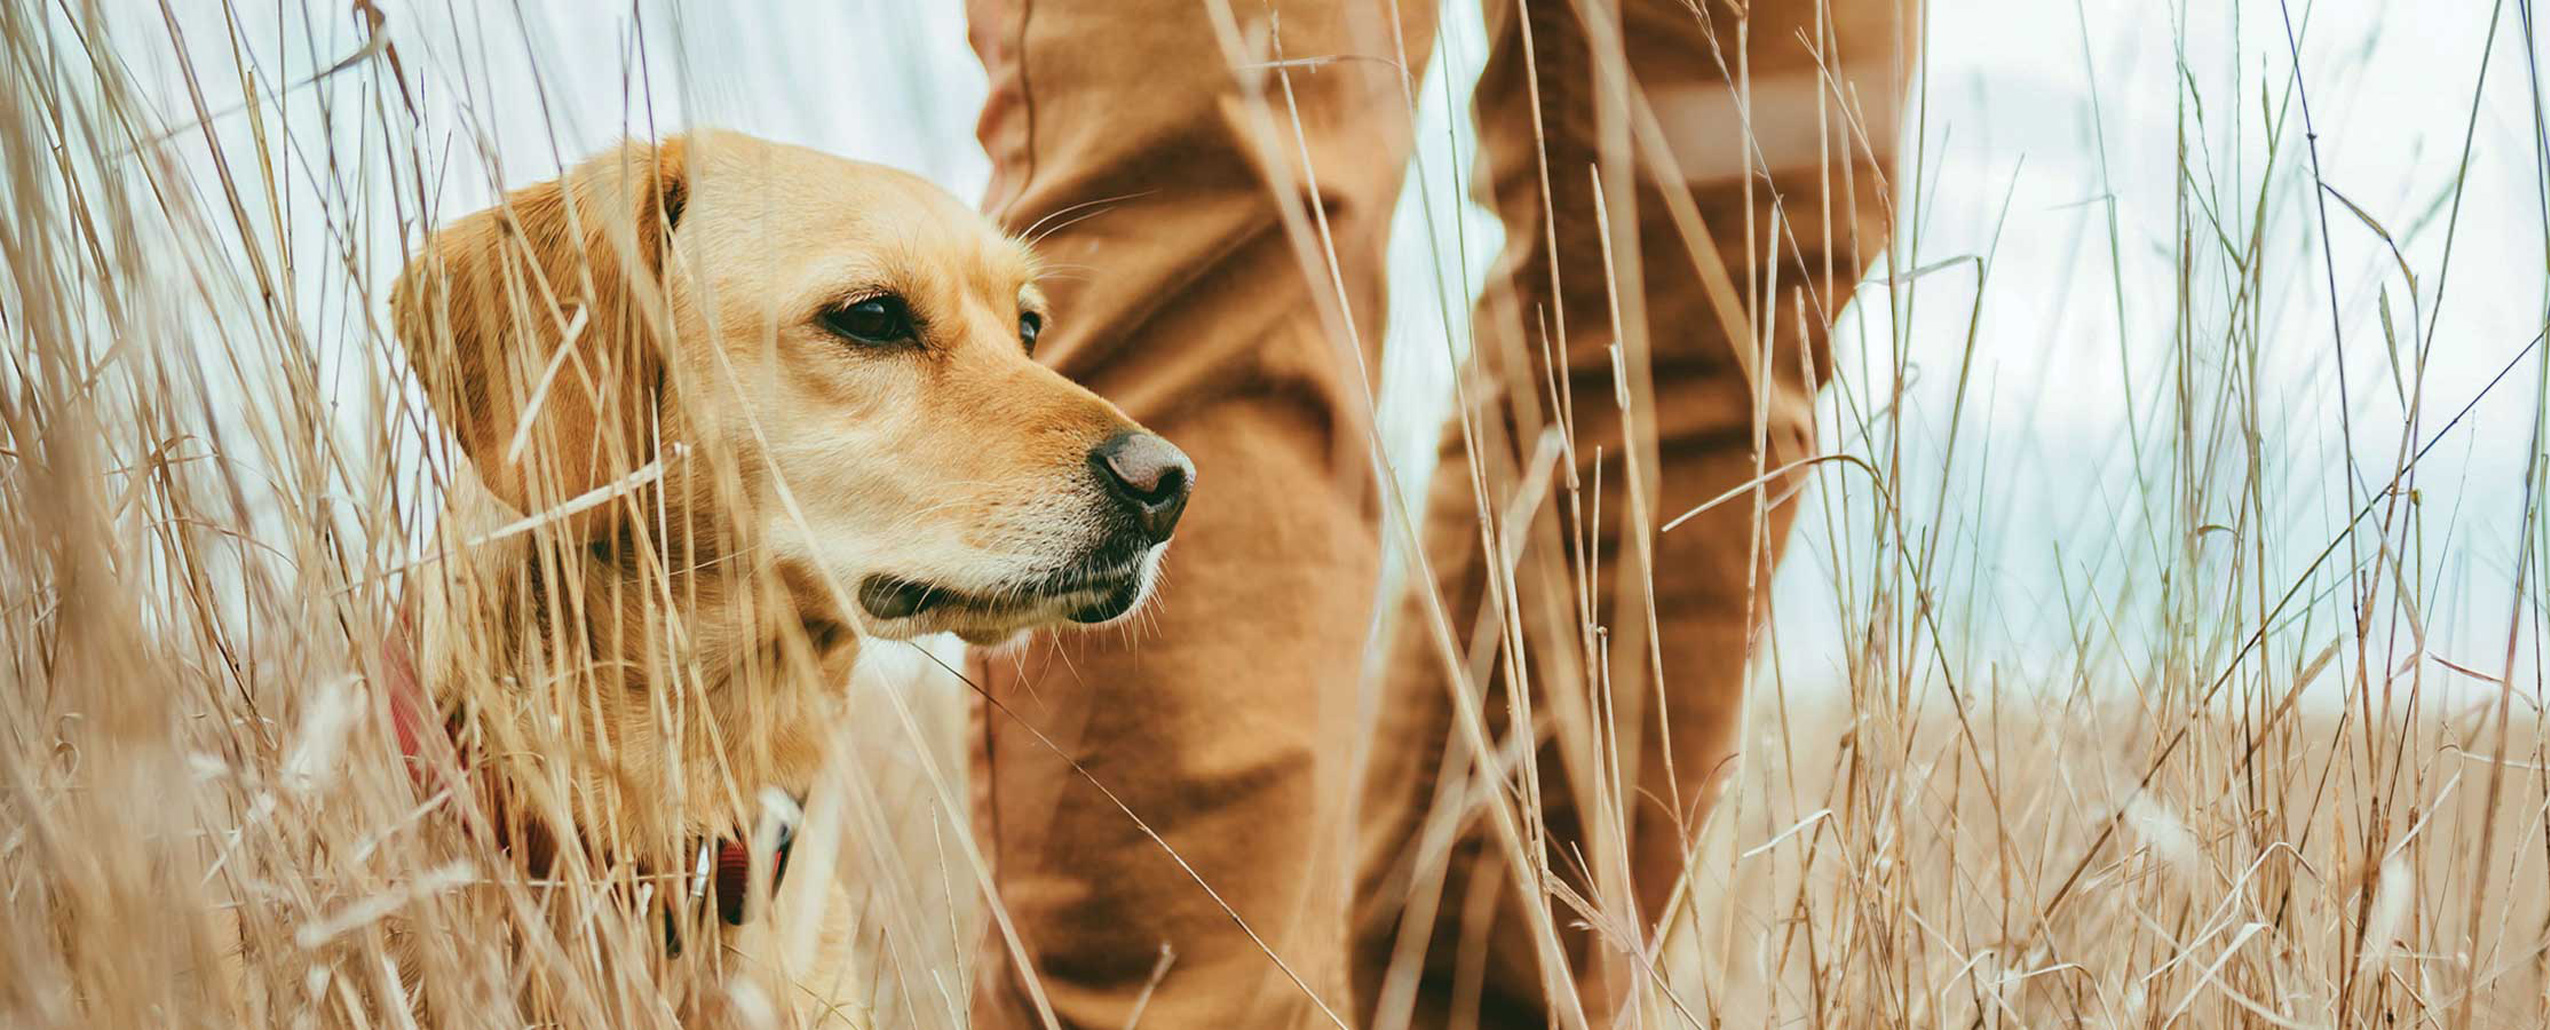 Yellow lab in front of person's legs in field